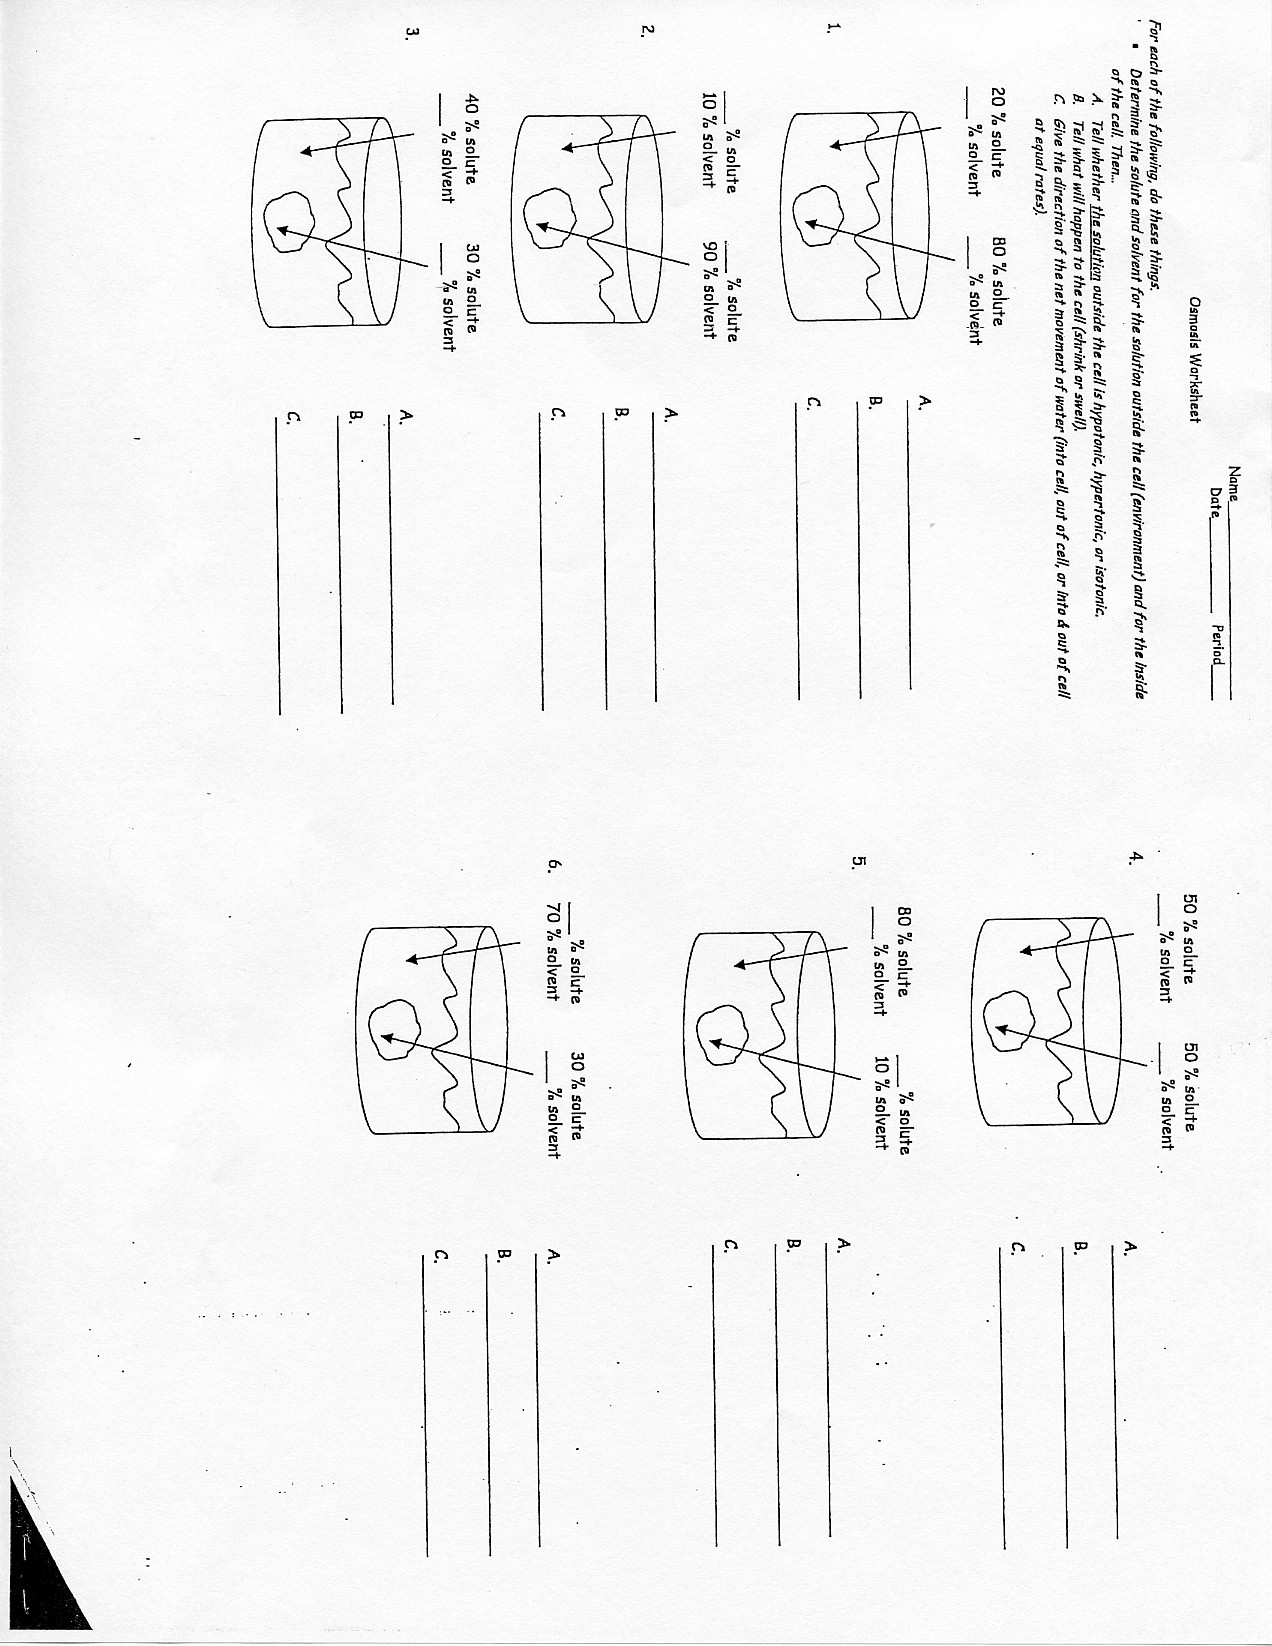 Diffusion Osmosis And Active Transport Worksheet Answers